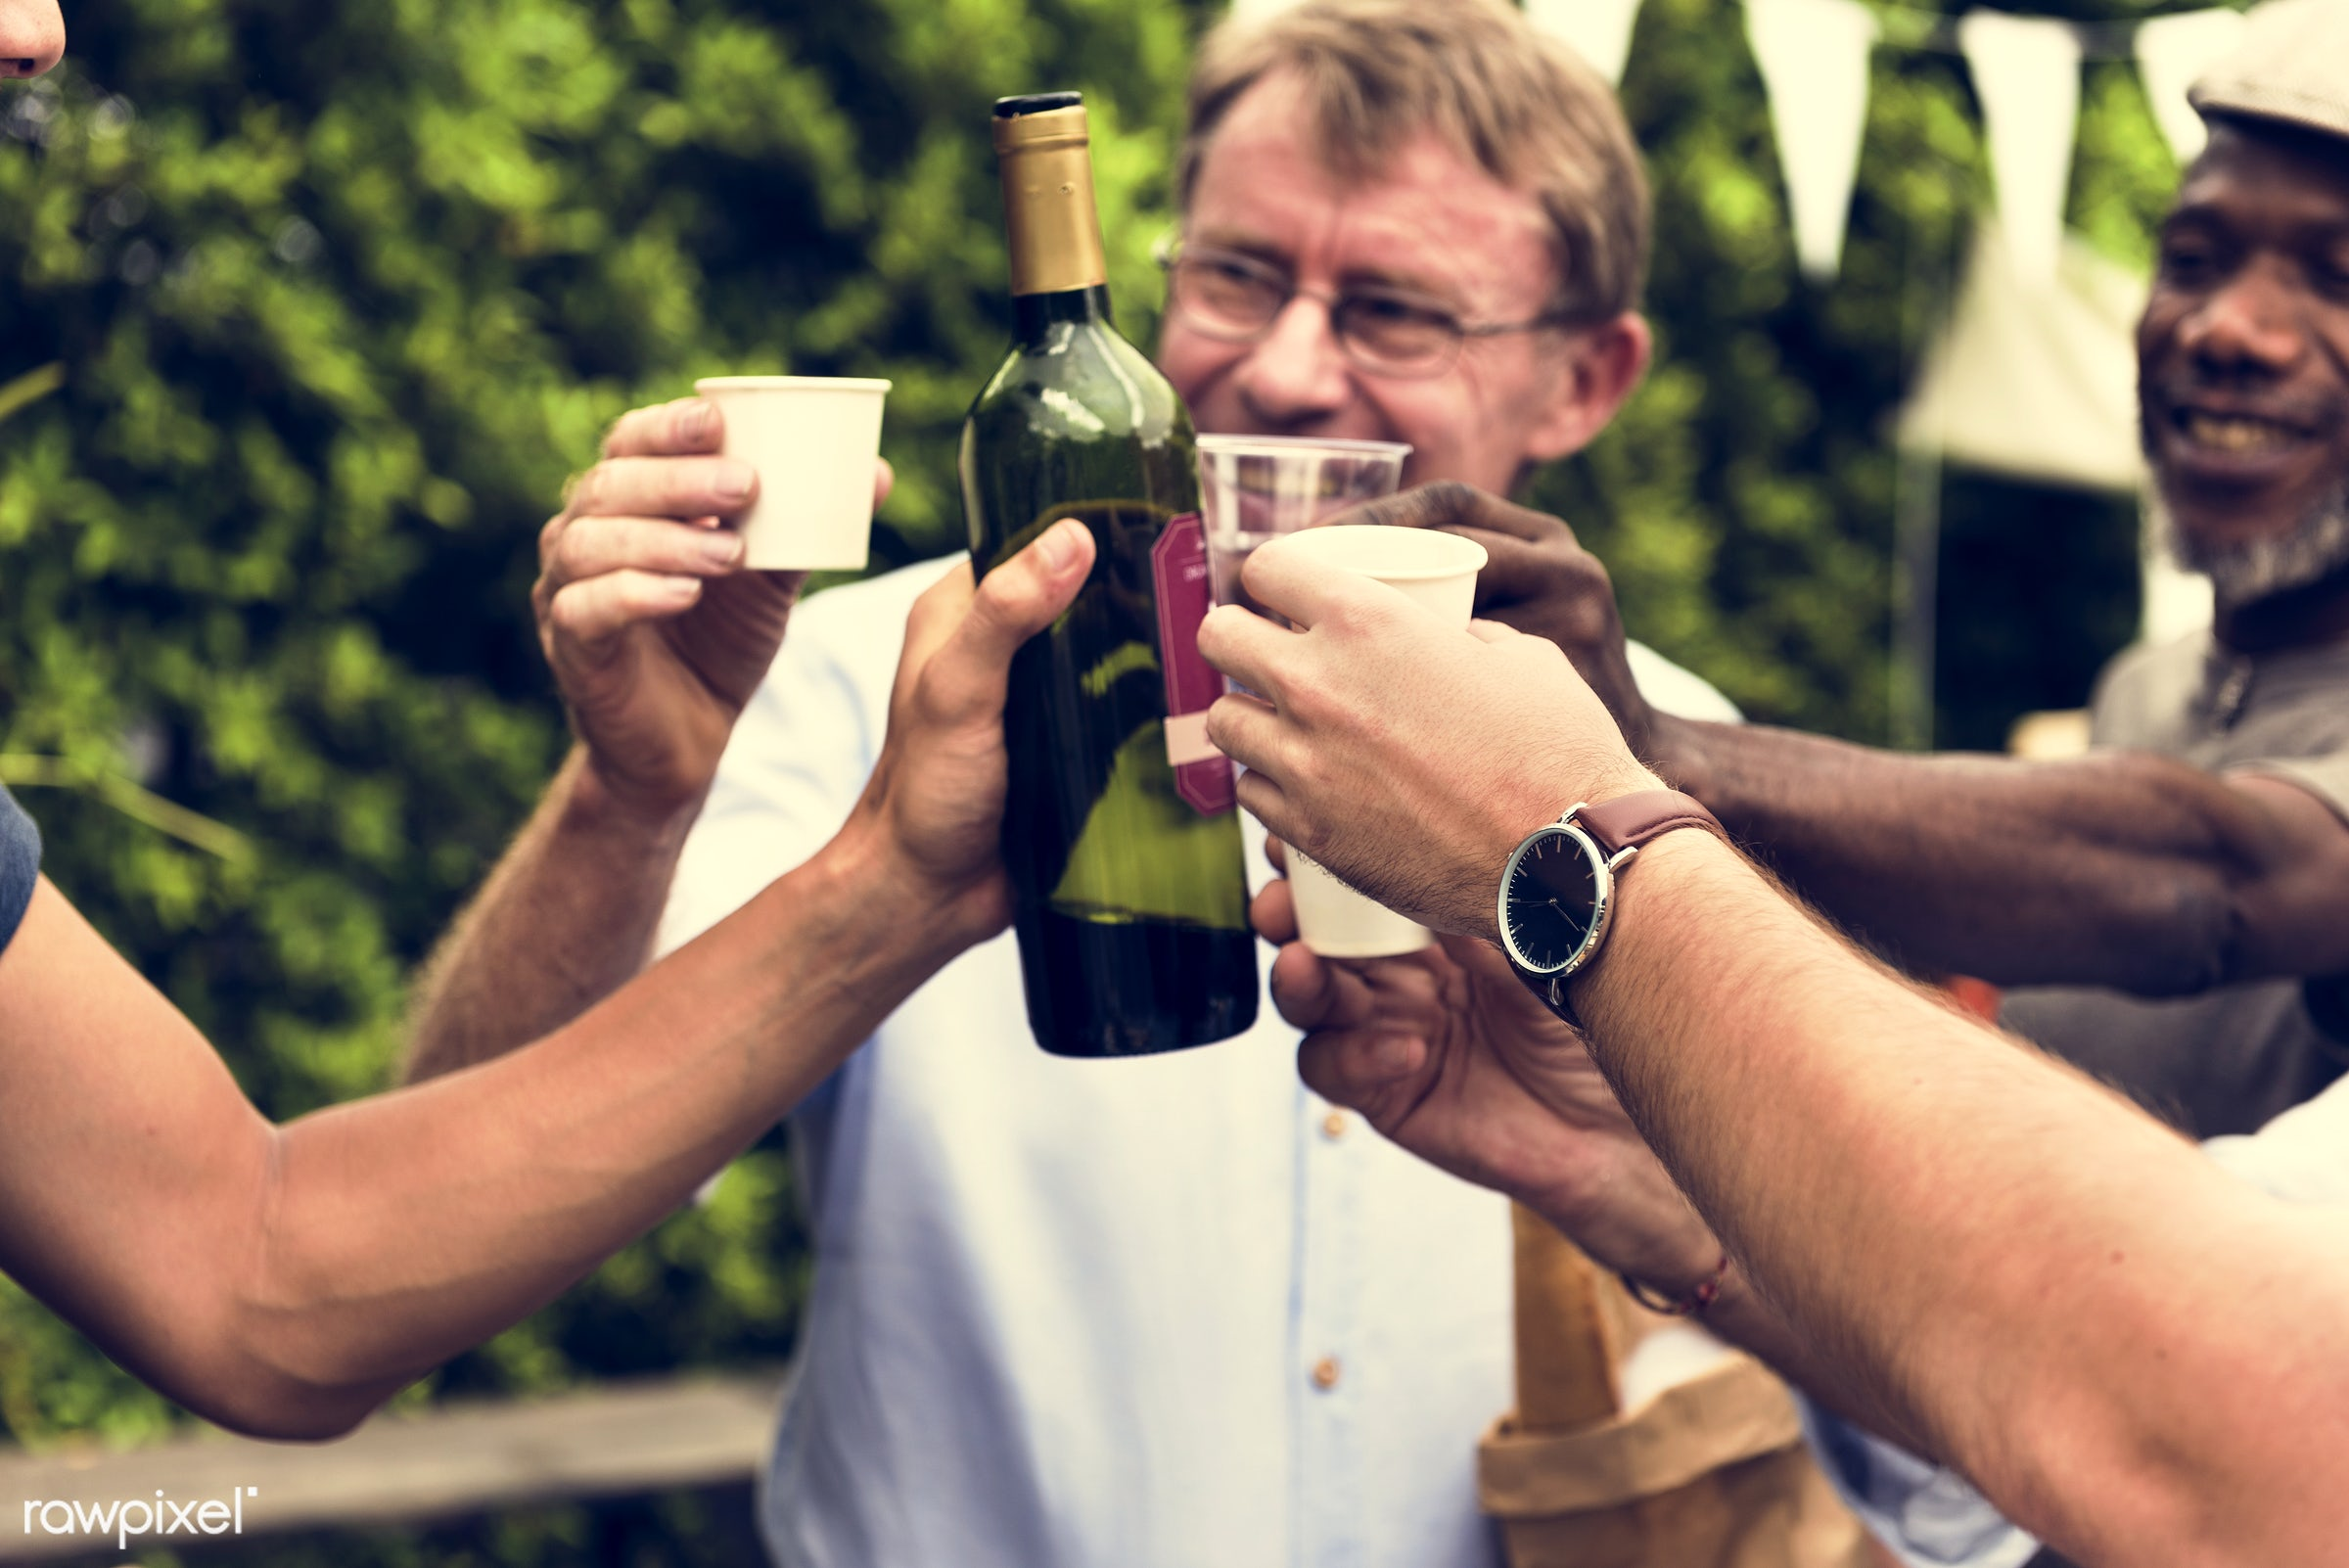 shop, store, stall, drinking, diverse, bonding, party, people, friends, smiling, wine, season, fun, health, nutrition,...